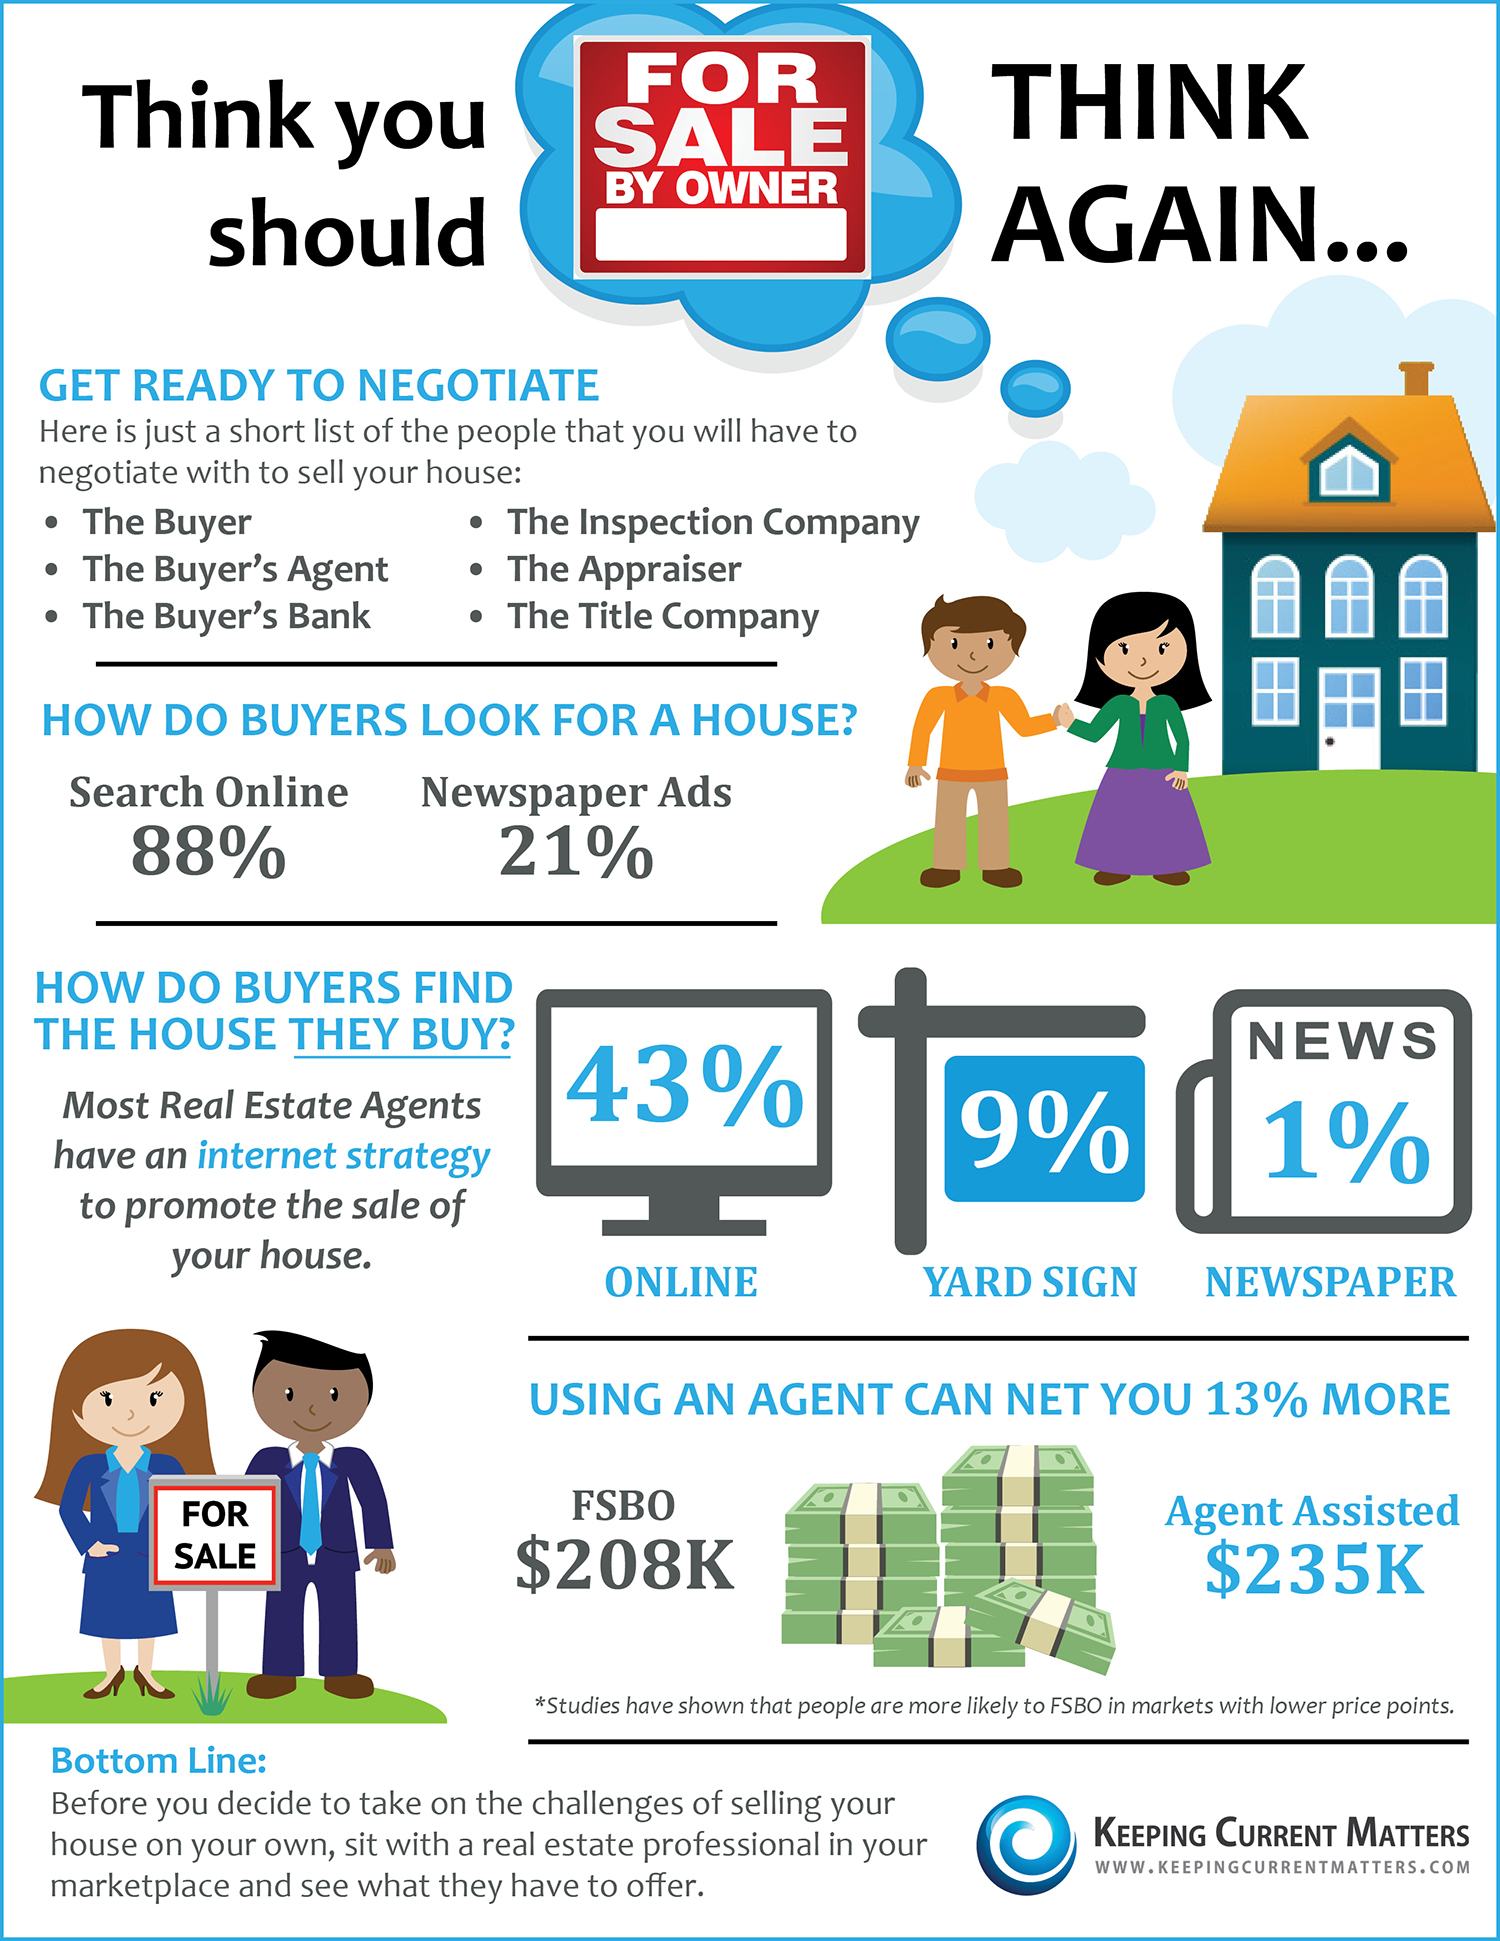 Why You Shouldn't For Sale By Owner